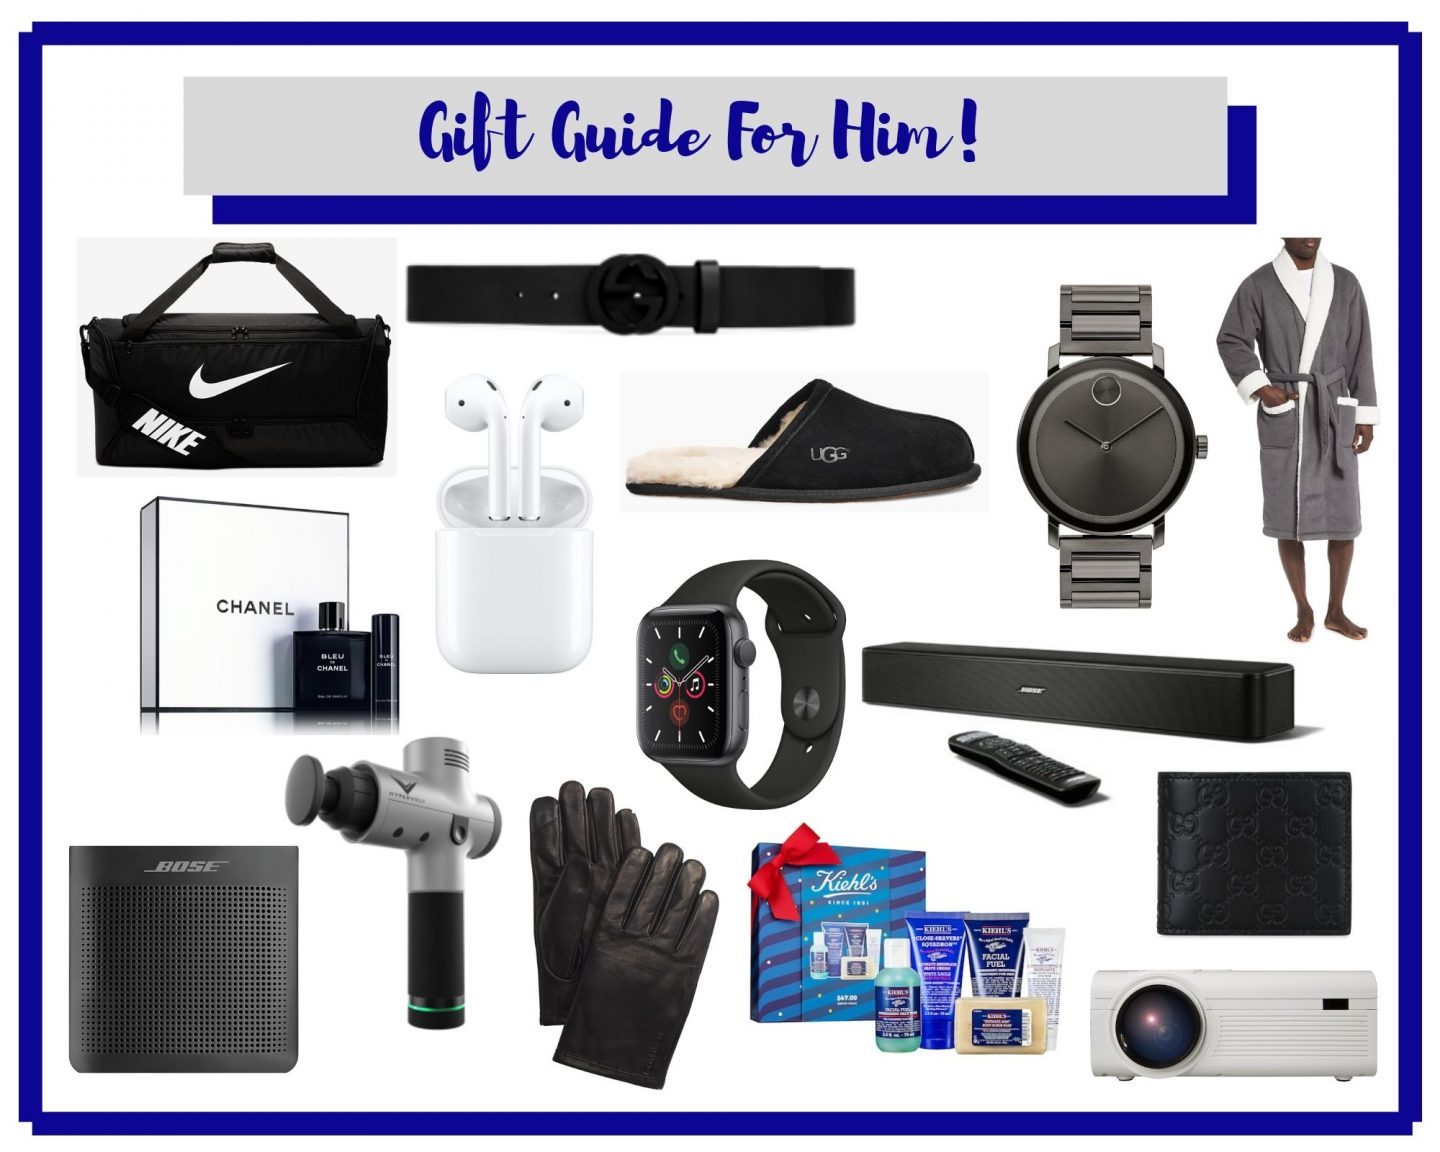 Gift Guide For Him!